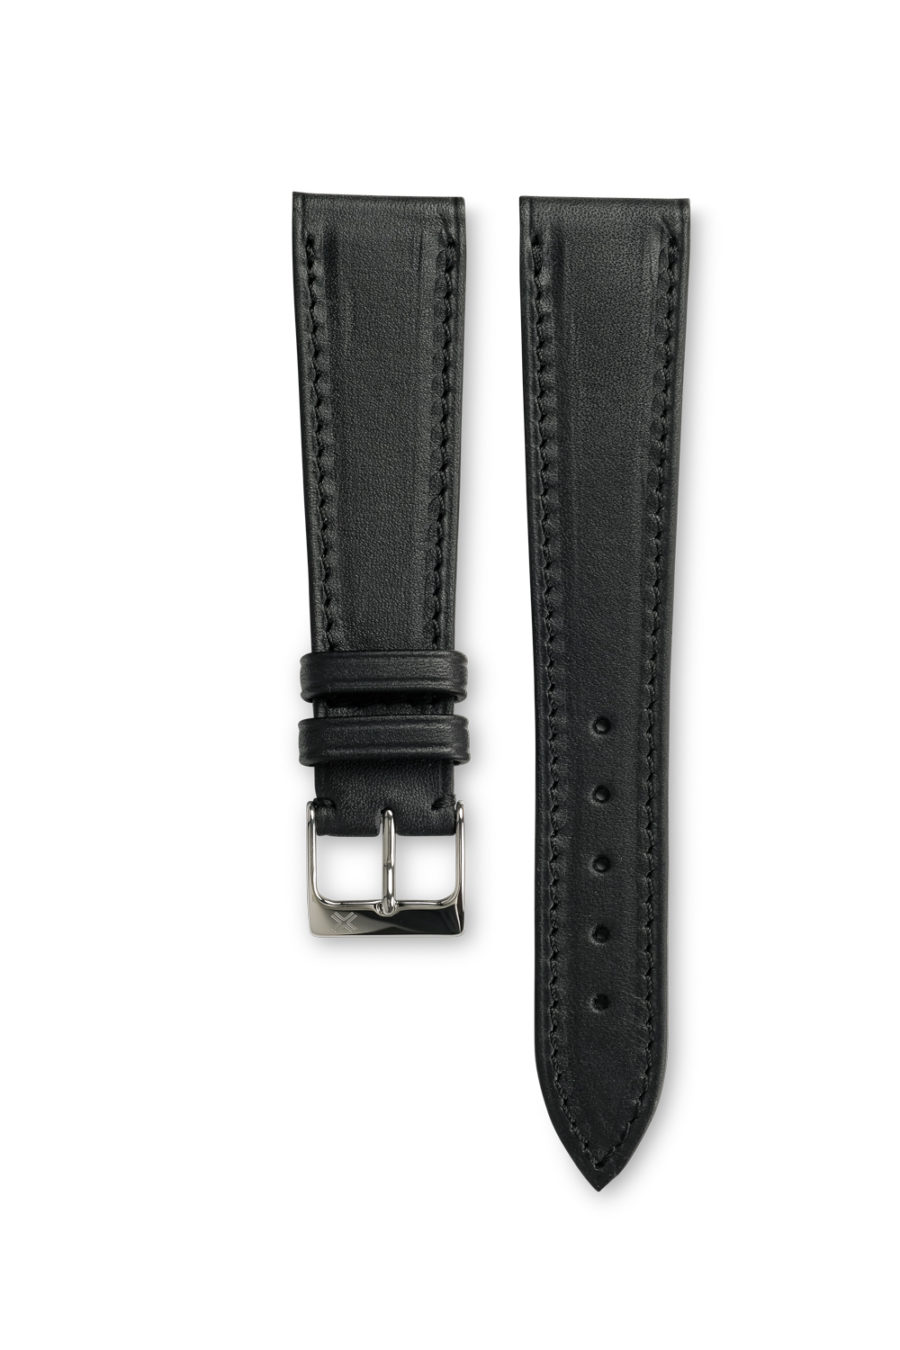 Smooth Barenia Classic deep black leather watch strap - tone on tone stitching - LUGS brand